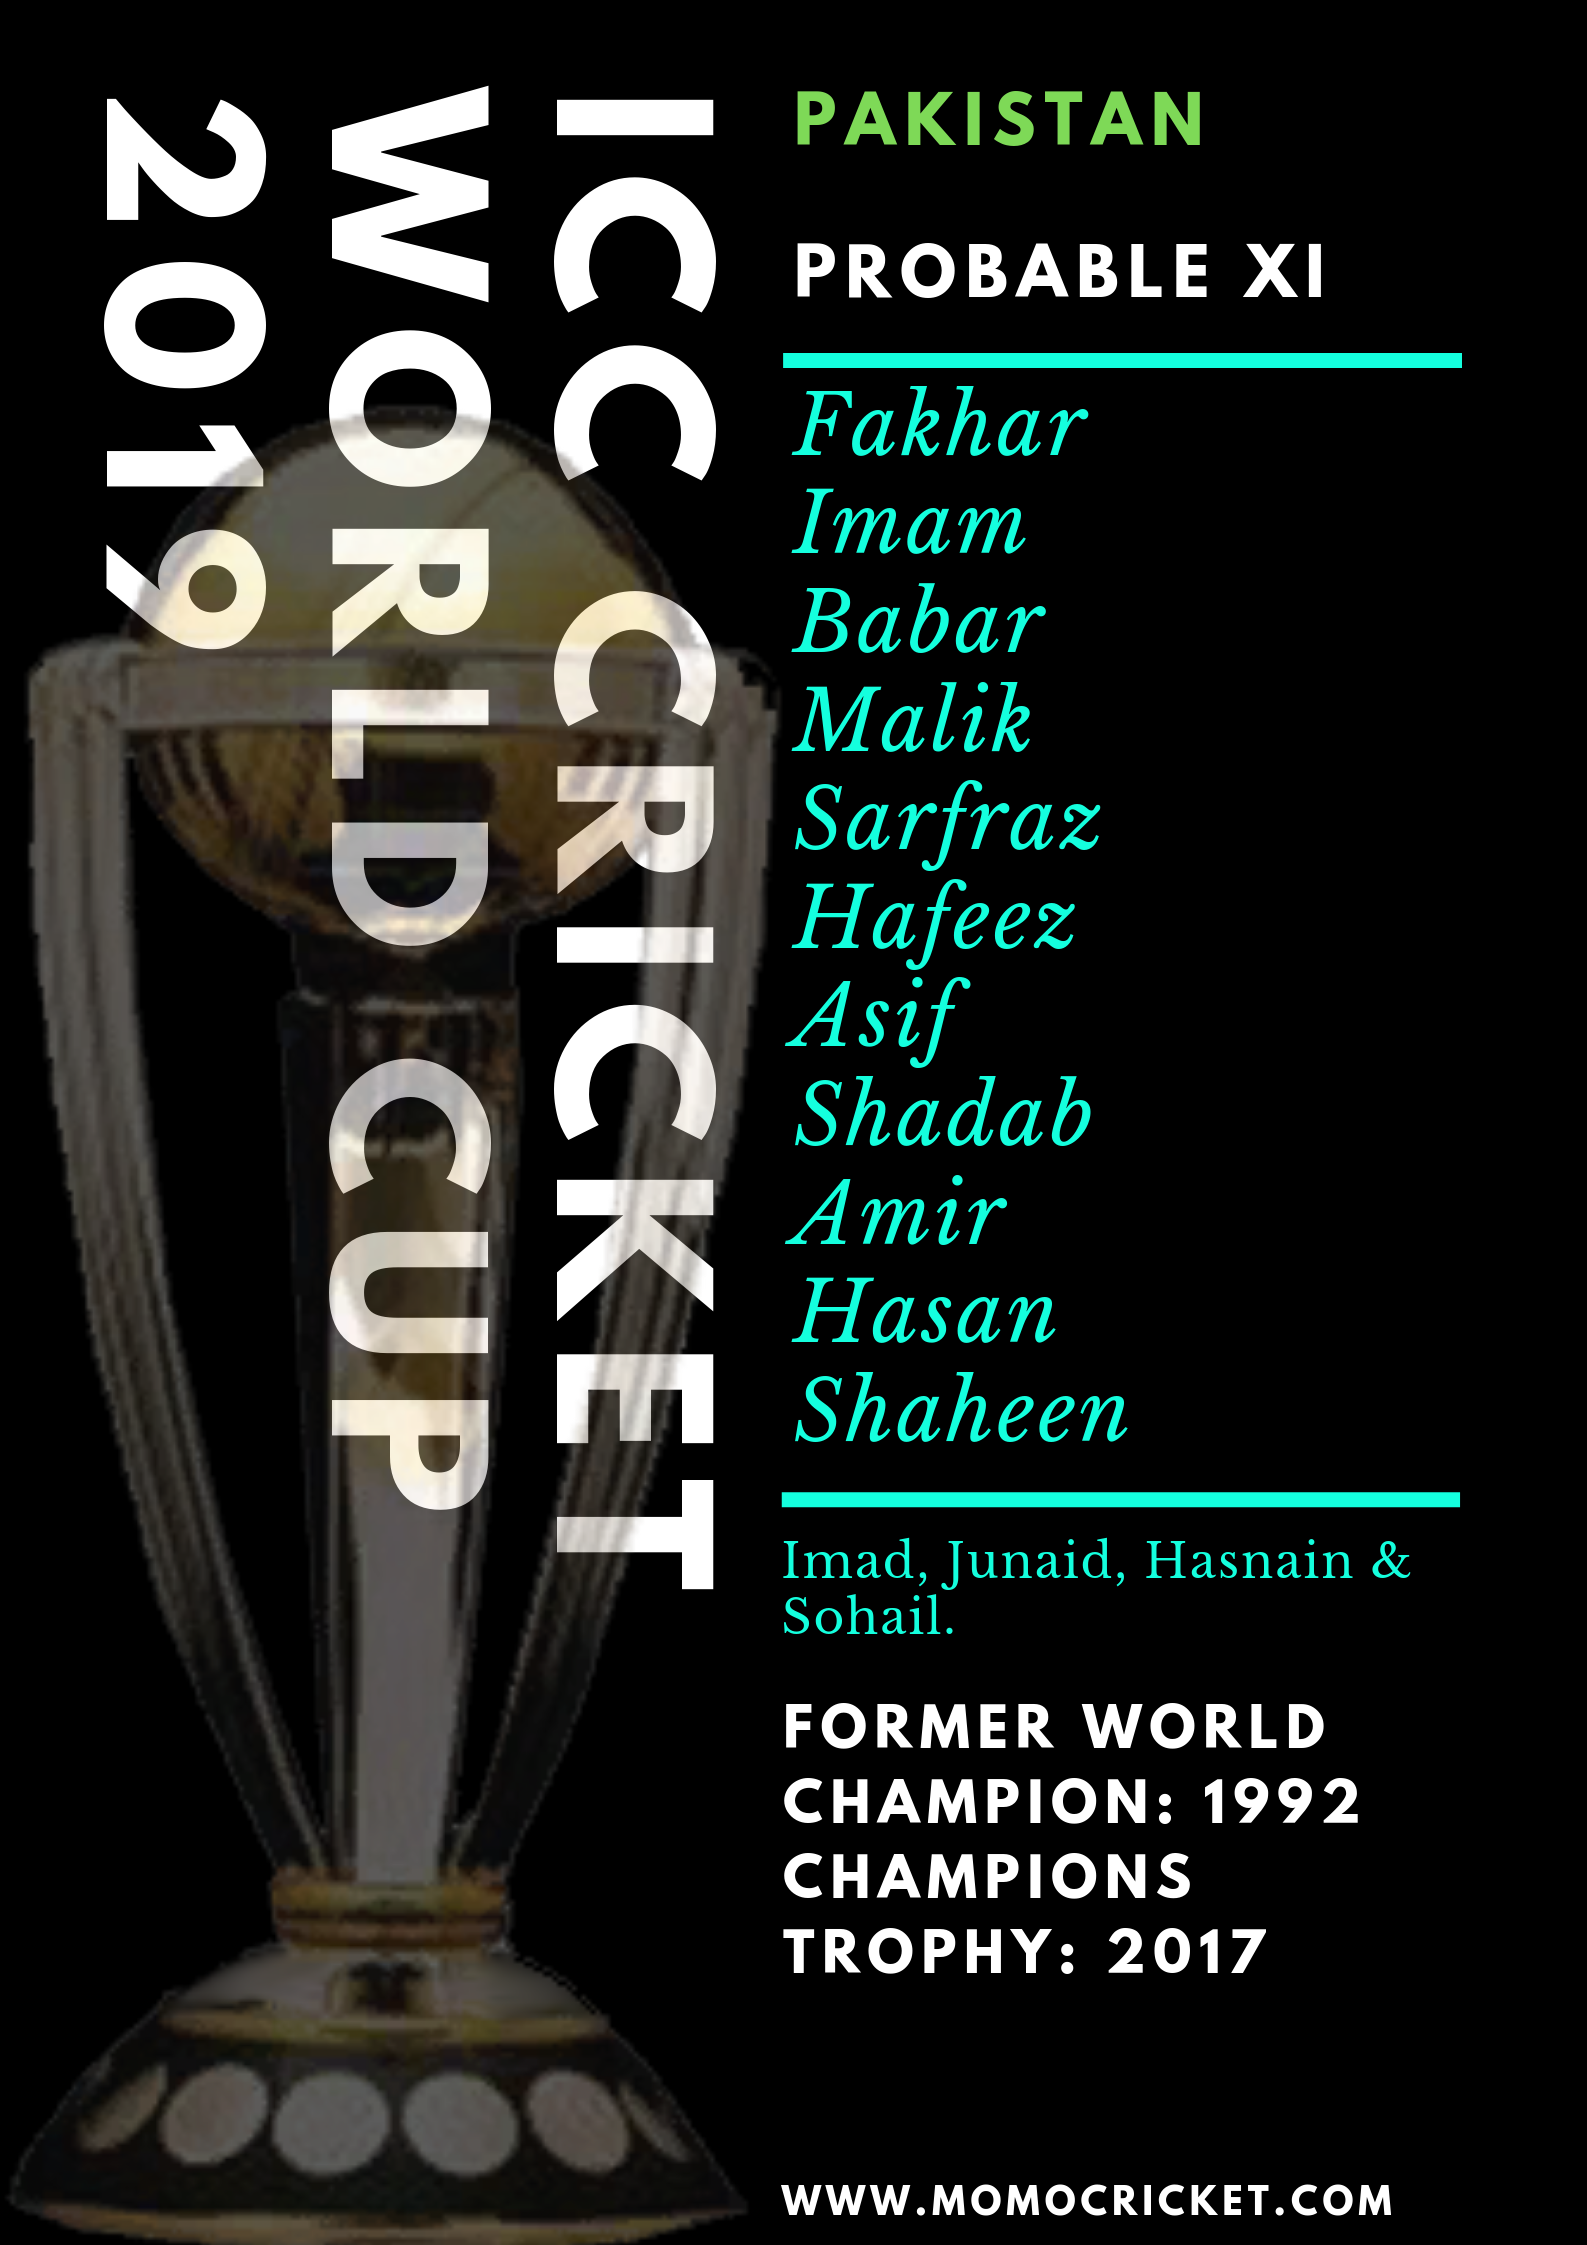 ICC Cricket World Cup Preview Pakistan